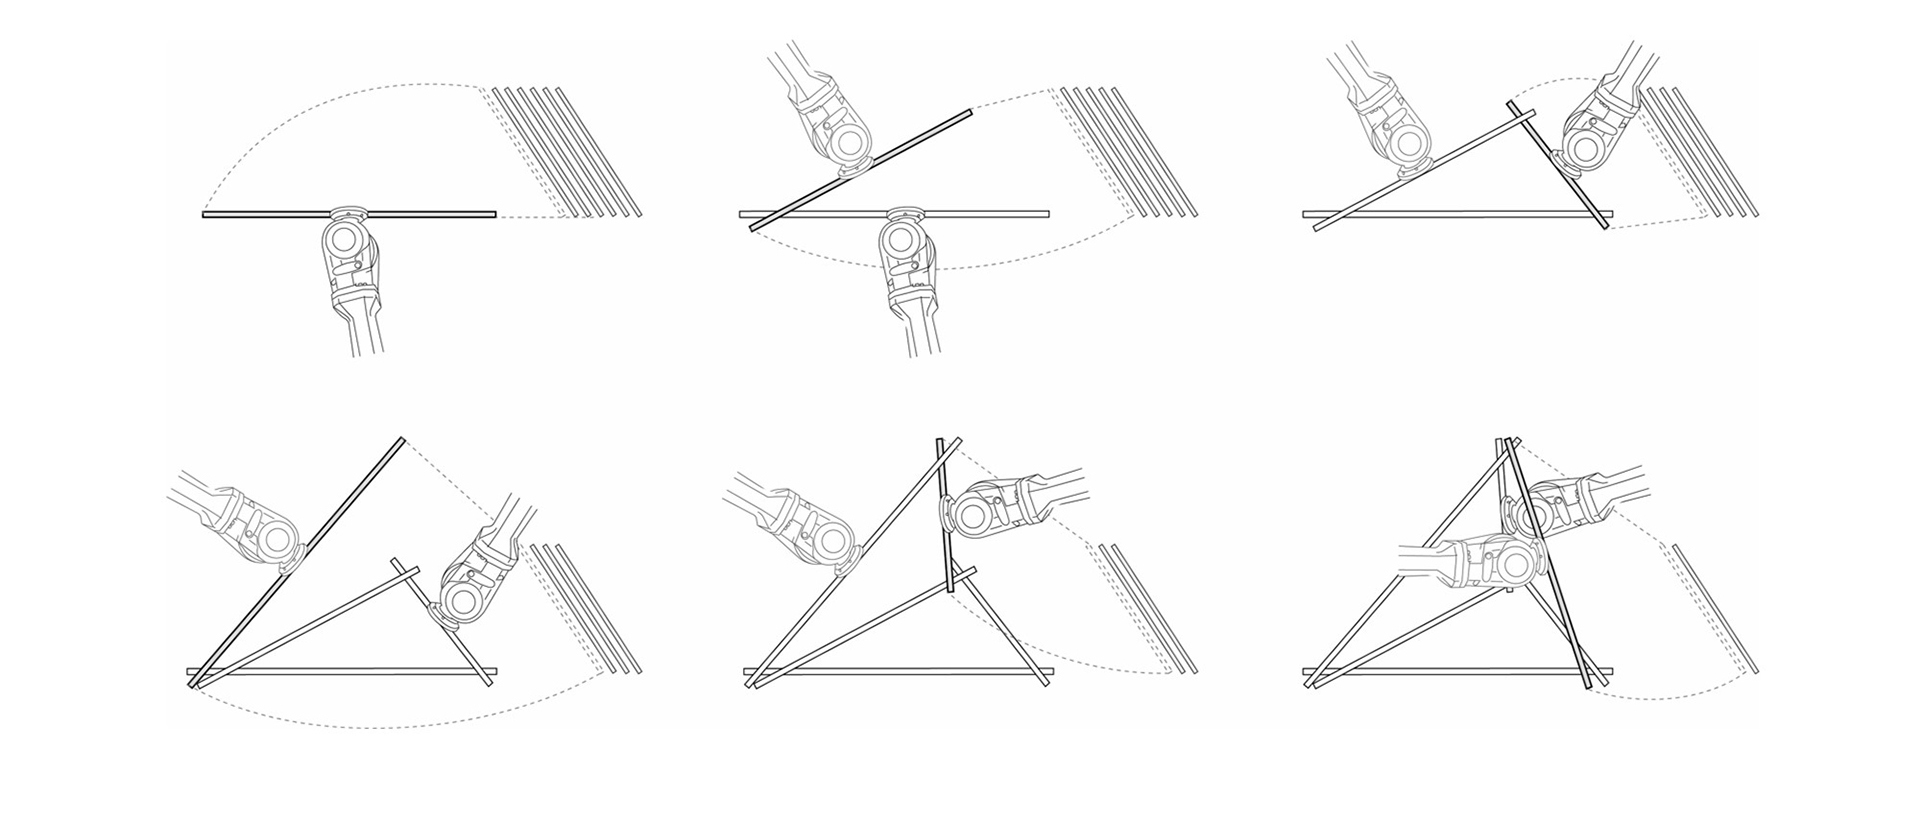 Figure 2: Conceptual Diagram of multi-robotic assembly strategy, exemplified through the sequential build-up of a spatial triangulated structure. Two robots are alternating in order to position the elements and at the same time serve as support structure.